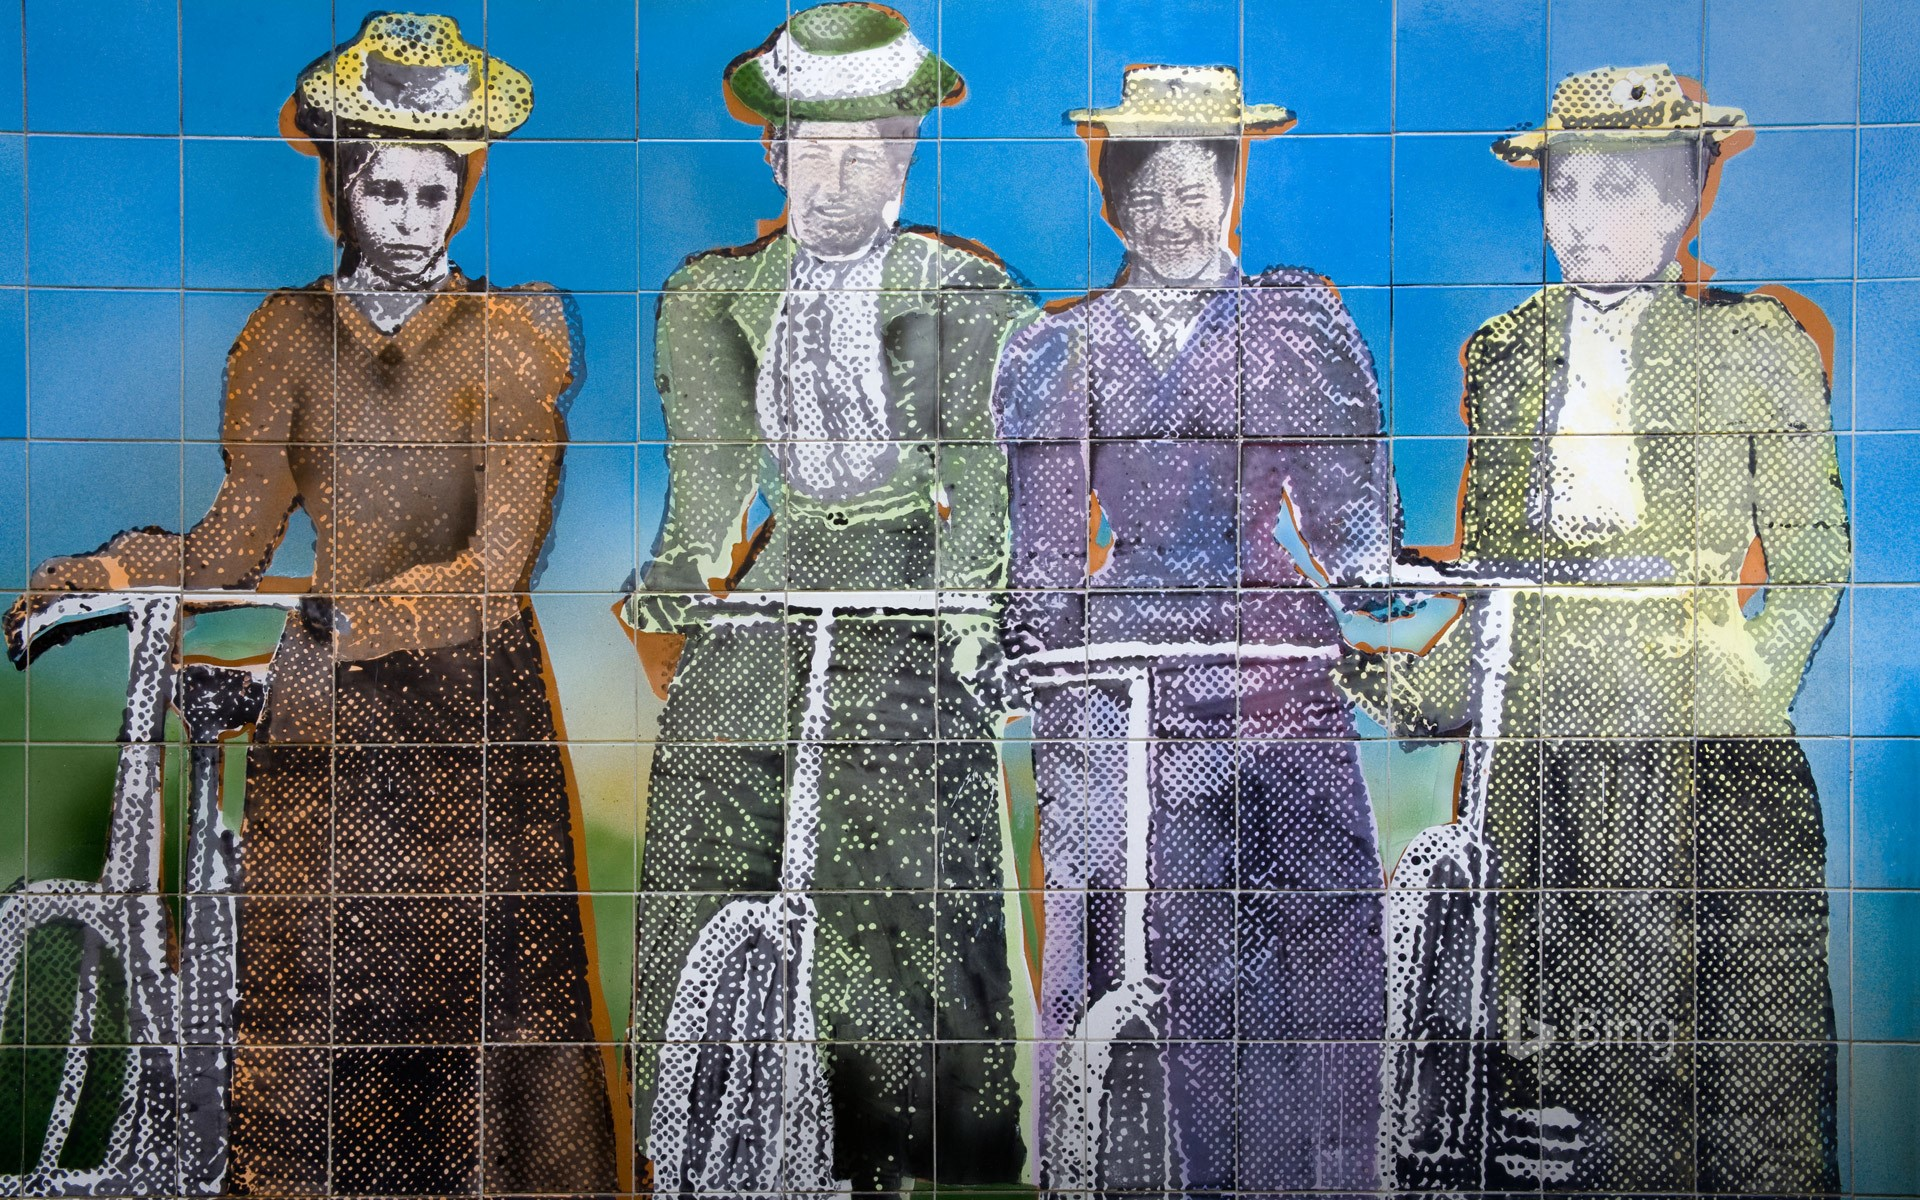 Women's suffrage tile mural outside the Auckland Art Gallery, New Zealand